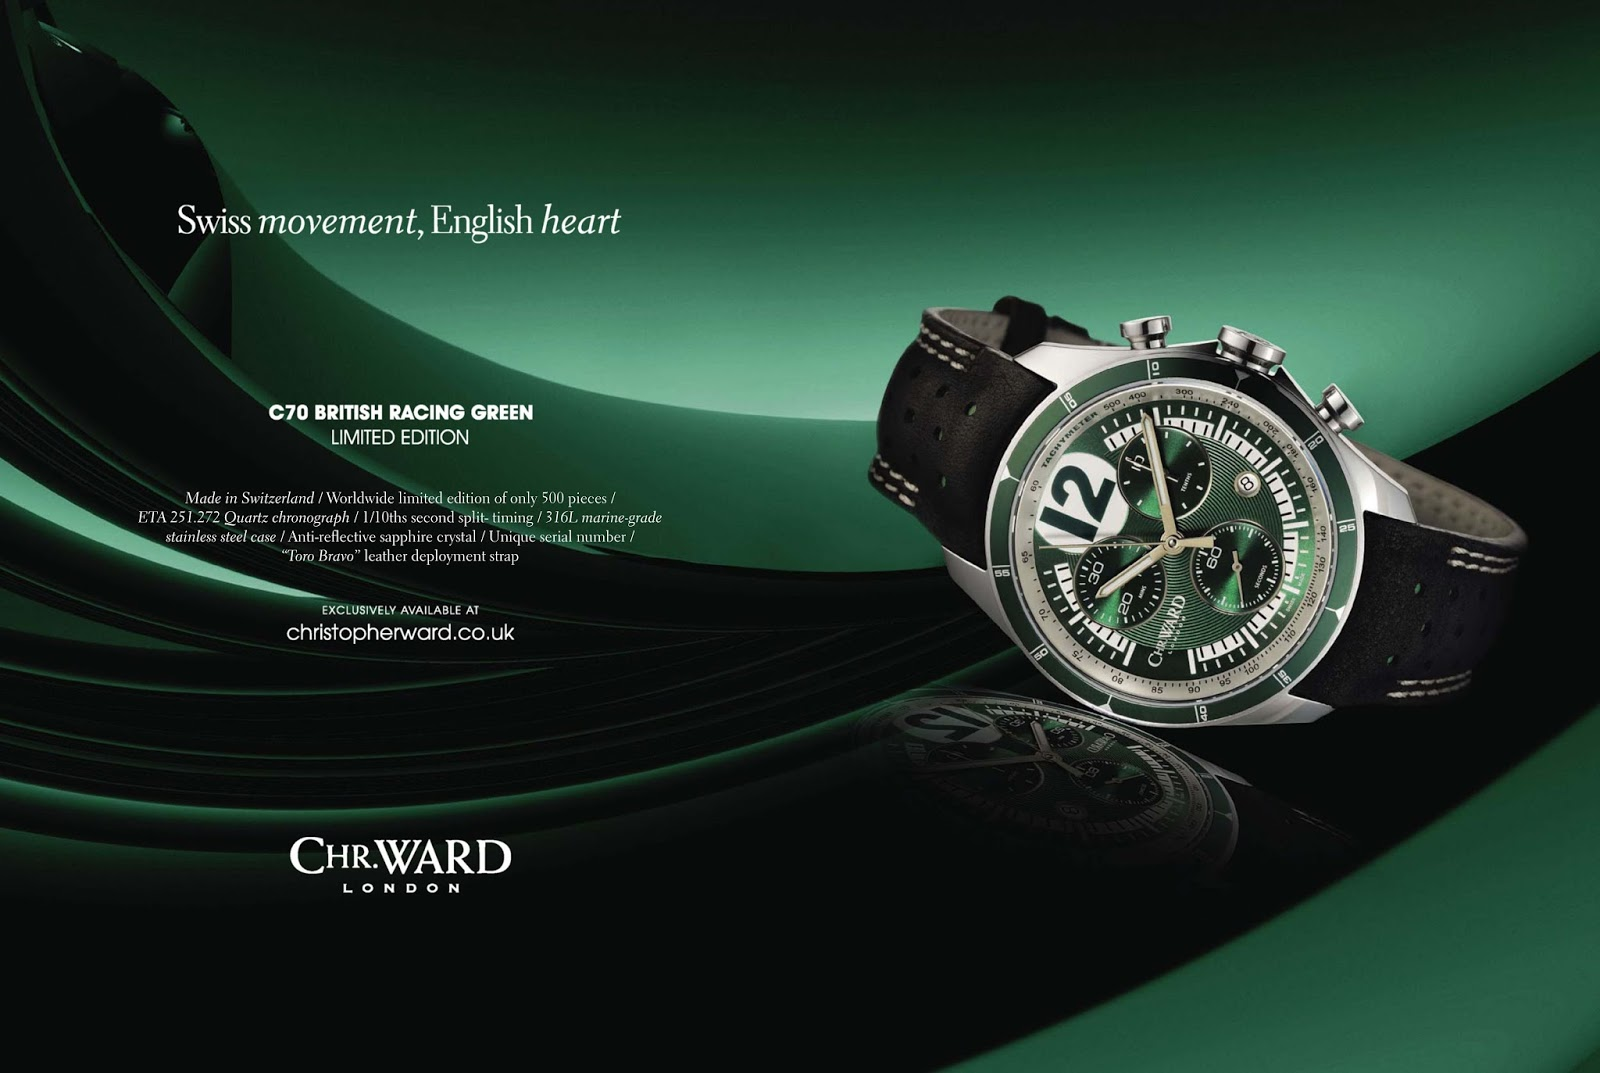 C70 British Racing Green Watch.